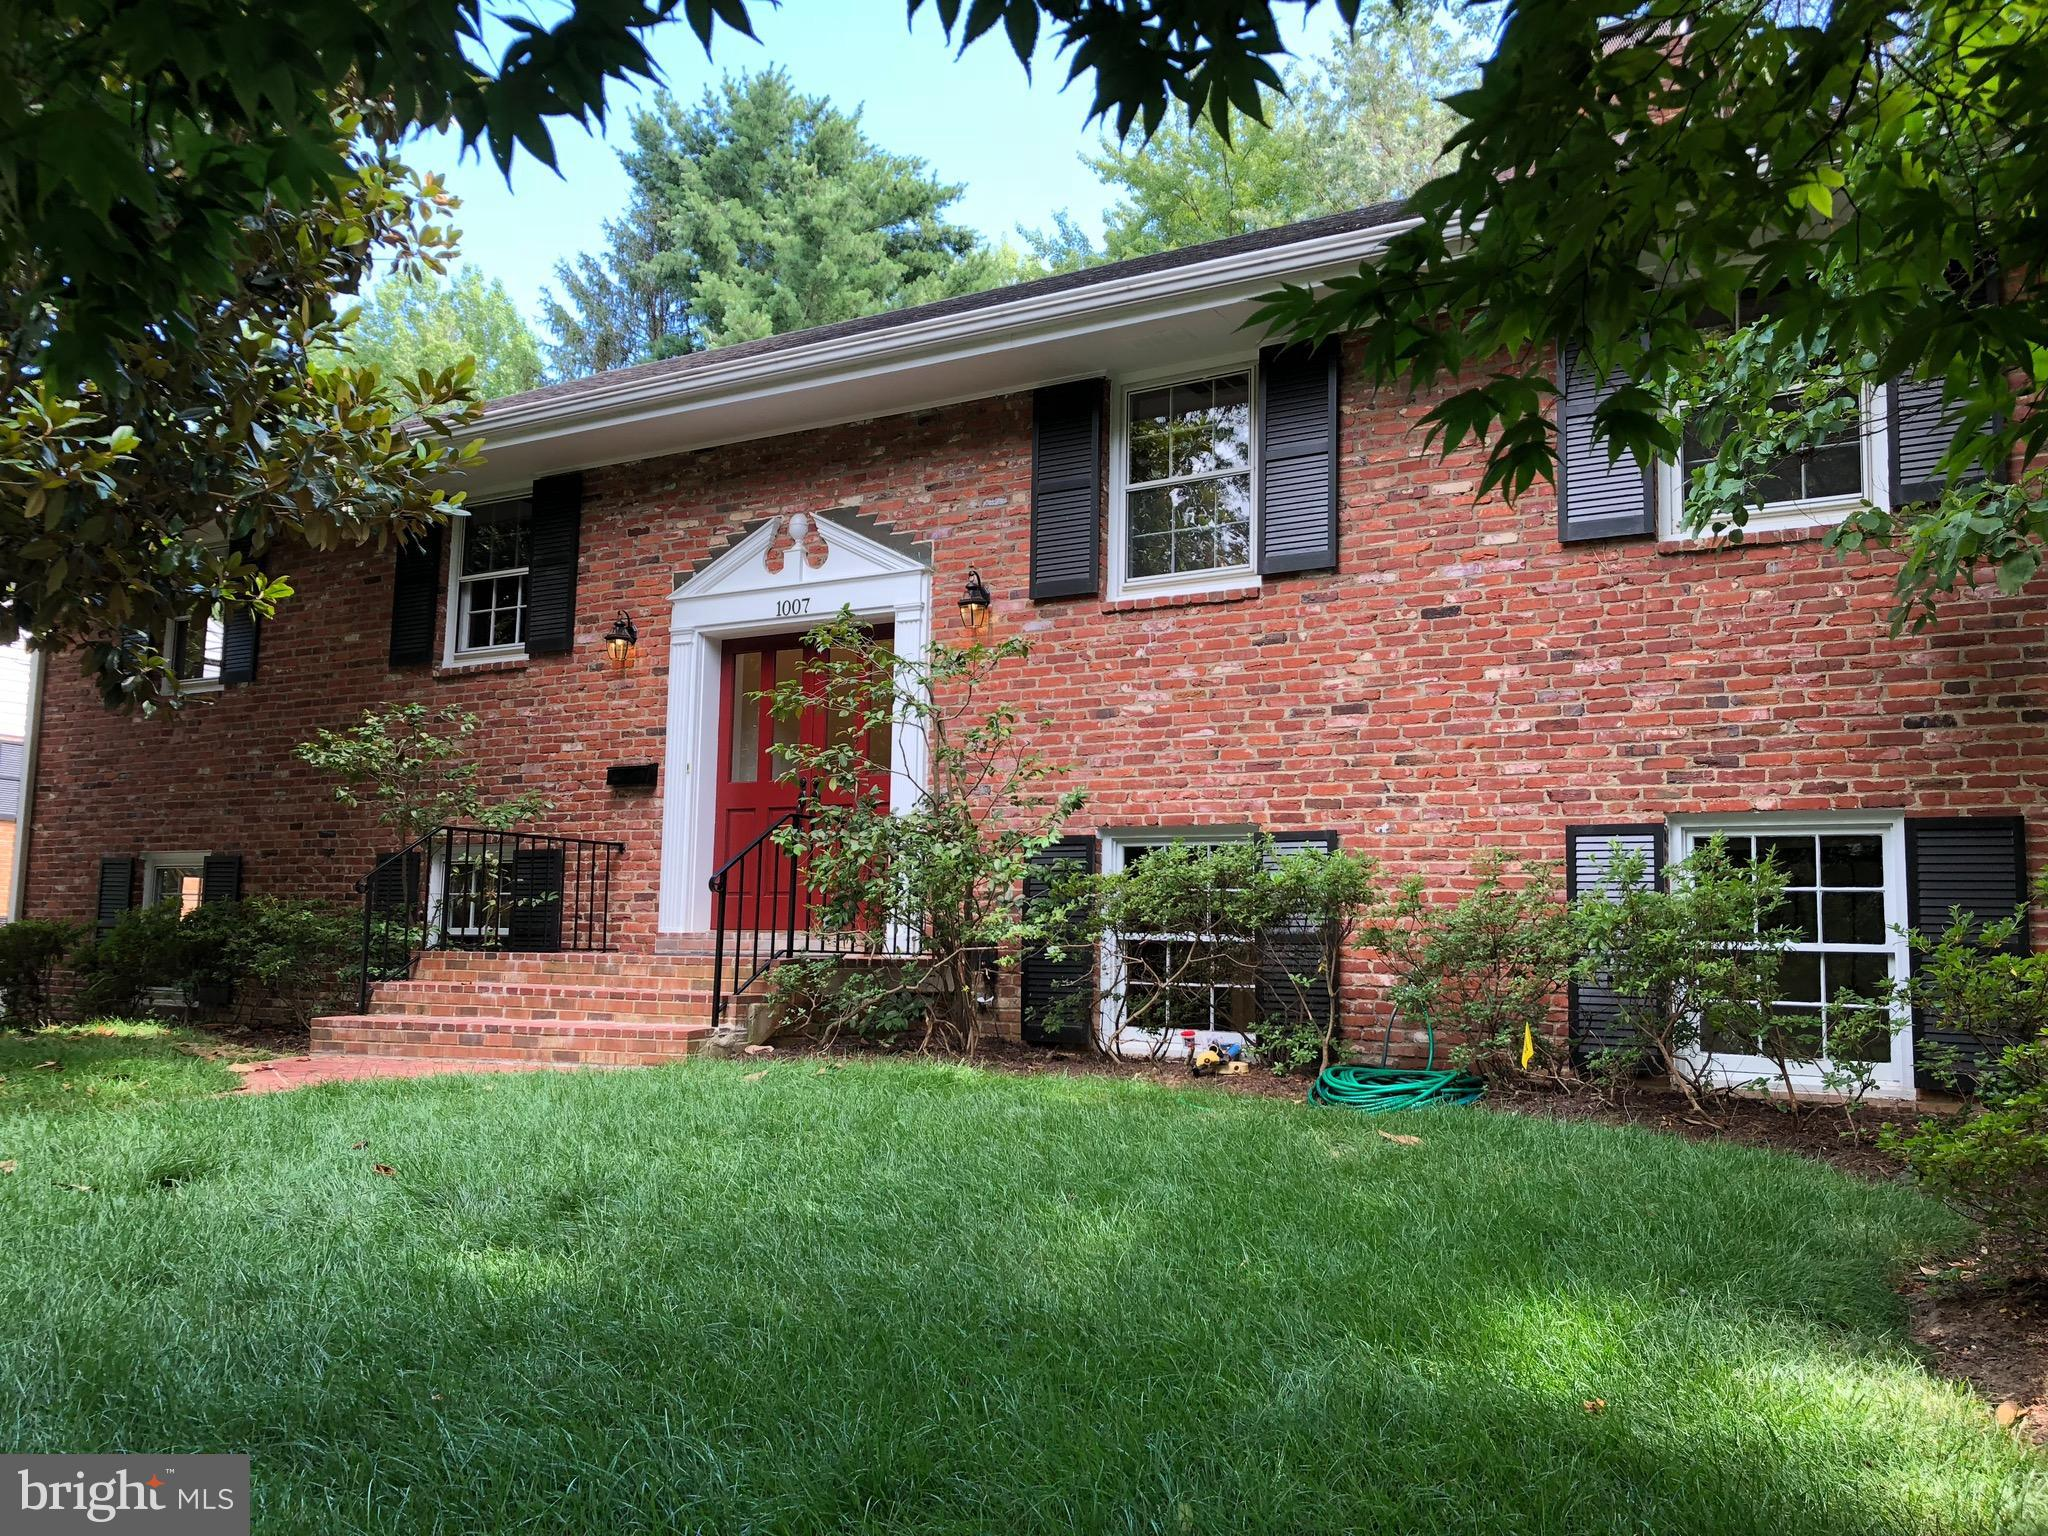 LARGE REMODELED (3000+SQ.FT) 5 BEDROOM 3 BATH SF IN WAYNEWOOD !! GARAGE, 3 FIREPLACES (2 ARE GAS), HARDWOOD FLOORS,  HUGE KITCHEN WITH FIREPLACE. ALL NEW BATHS. NEW CARPETS, FRESH PAINT, LG STORAGE AREA.  WALK IN CLOSET.  GREAT AREA. BY THE POTOMAC RIVER/BIKETRAIL. WALK TO SCHOOLS/POOL/PARK. MNTS TO OLD TOWN, EASY COMMUTE TO THE PENTAGON, FORT BELVOIR AND DC NOTHING TO DO!!!